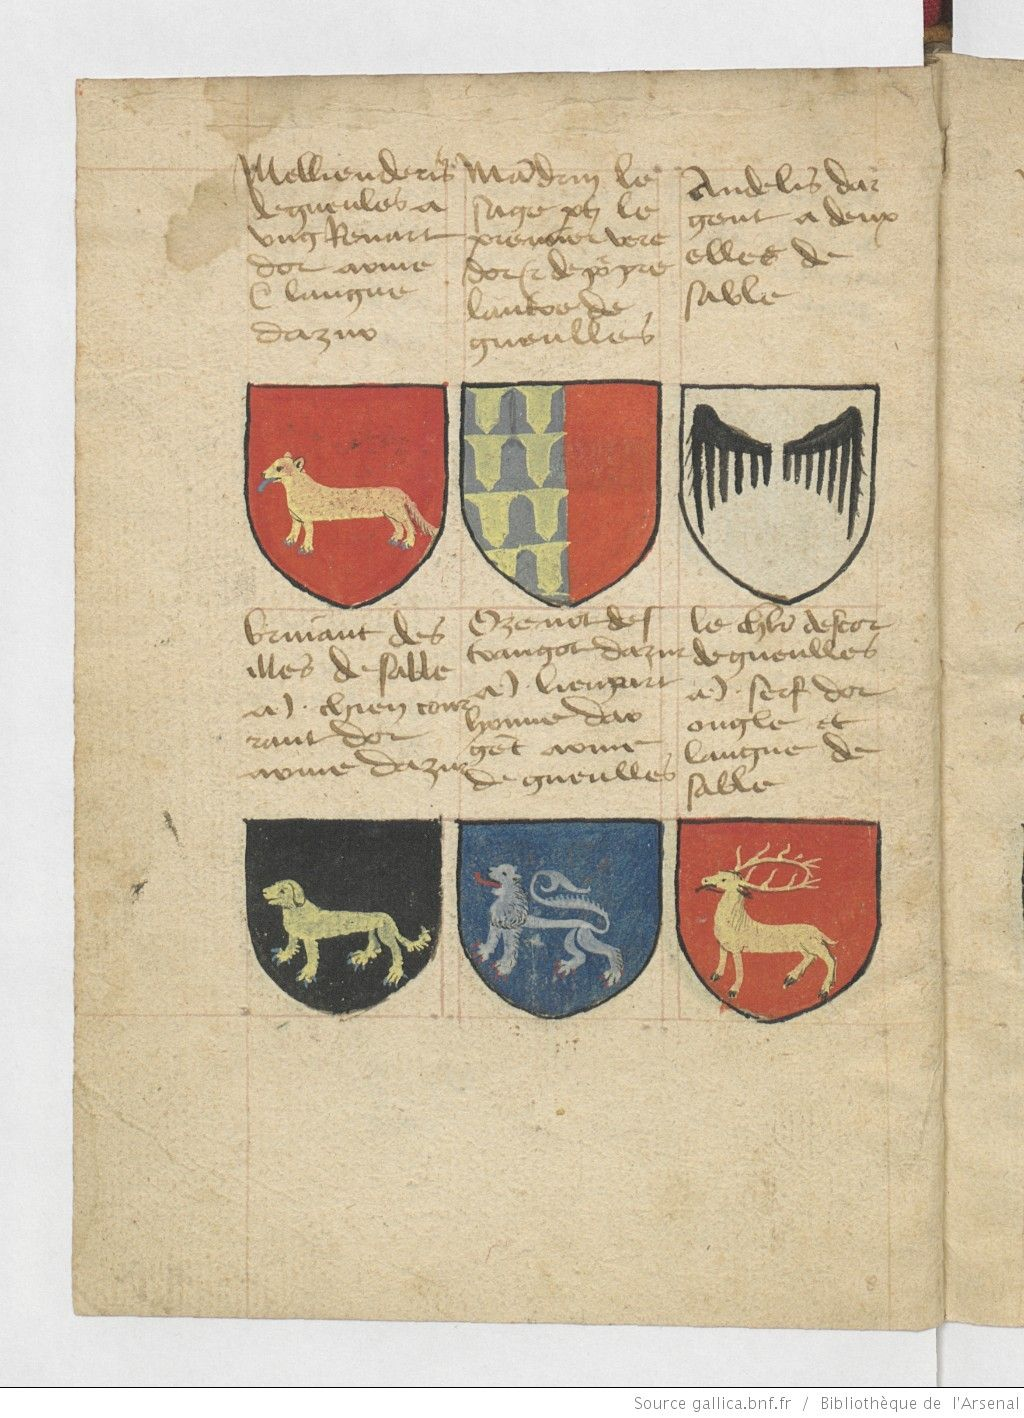 Knights Of The Round Table Wiki It Sunt Names Weapons And Coats Of Arms Of Companions Knights Of